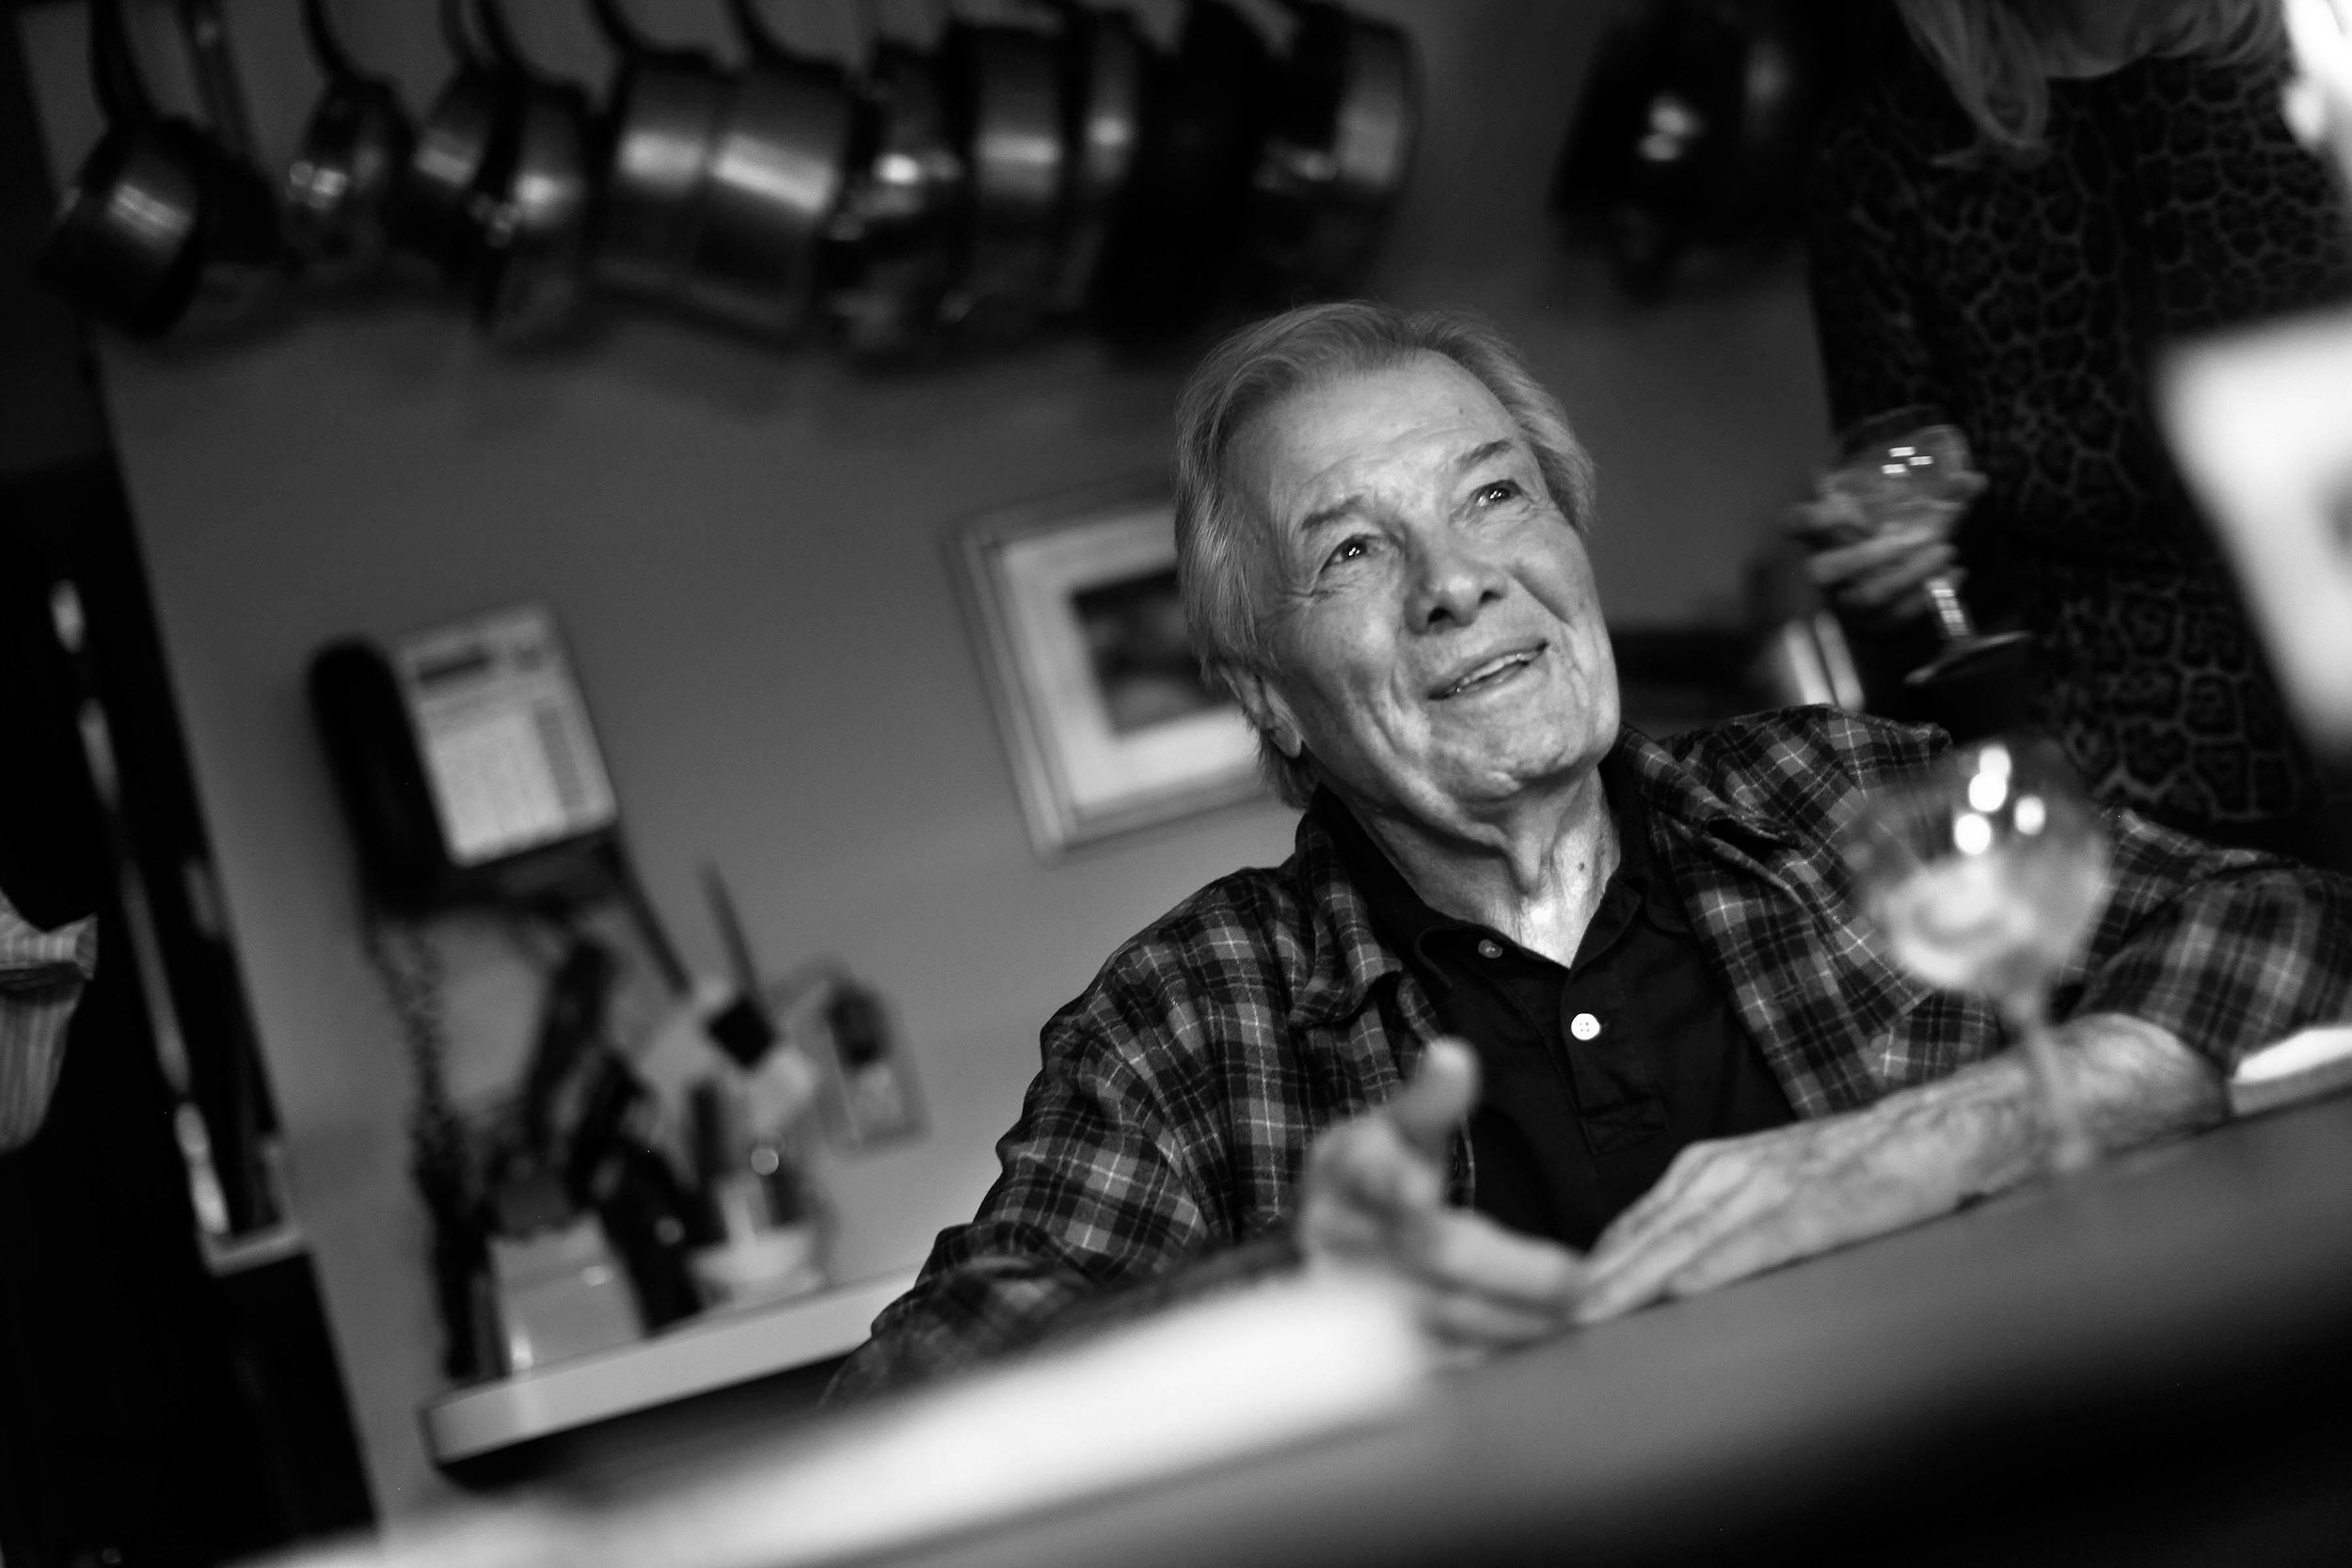 Jacques Pepin - Chef/Author, Madison CT